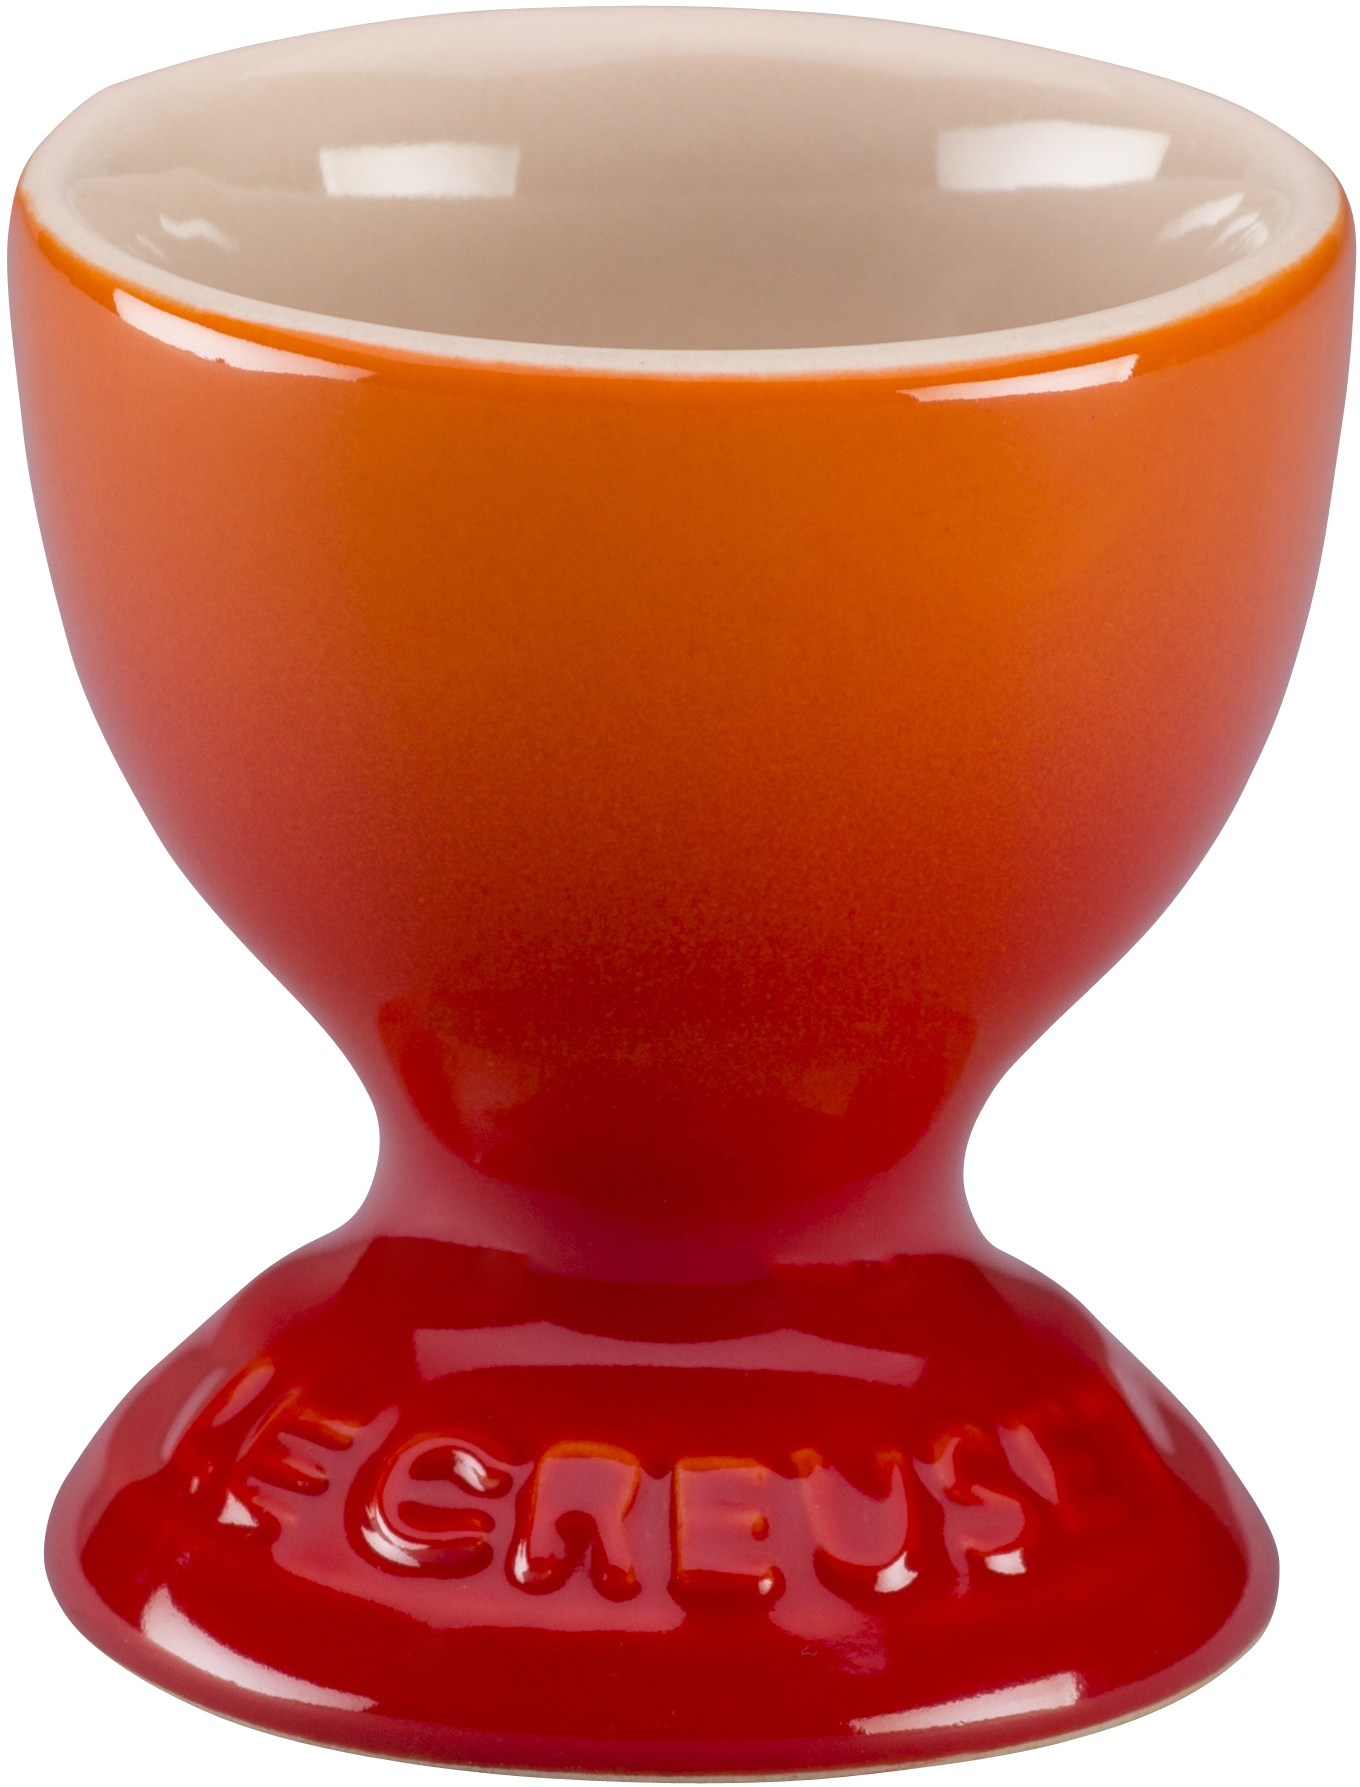 Le Creuset Flame Stoneware Egg Cup